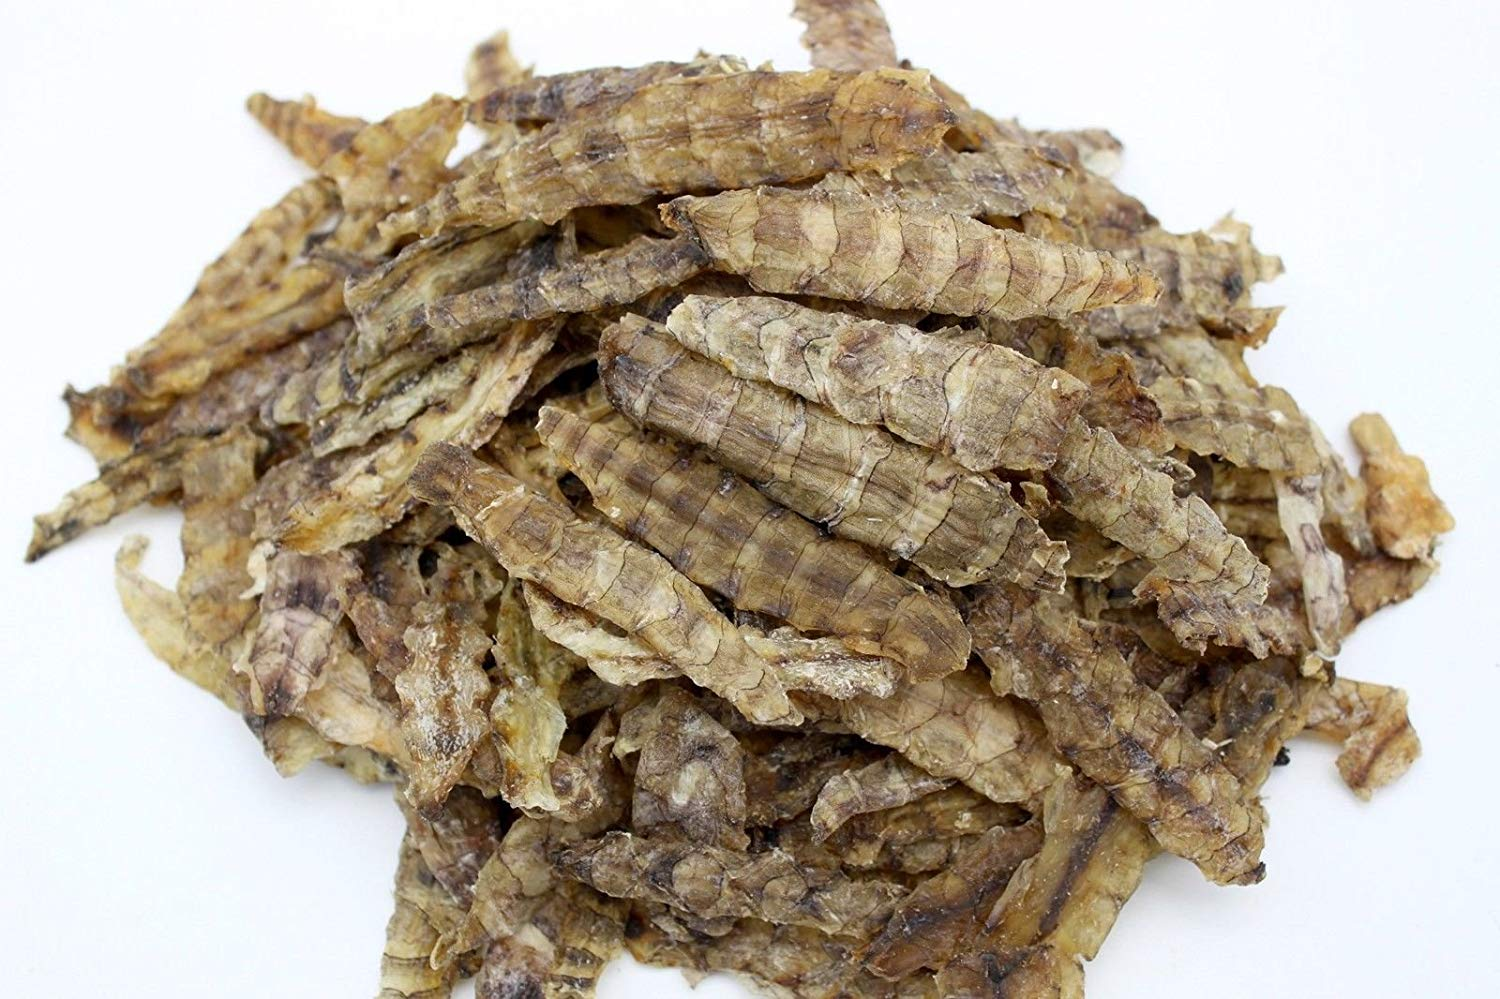 China Good Food Dried Seafood Dried Mantis Shrimps 瀨尿蝦干 Free Worldwide AIR Mail